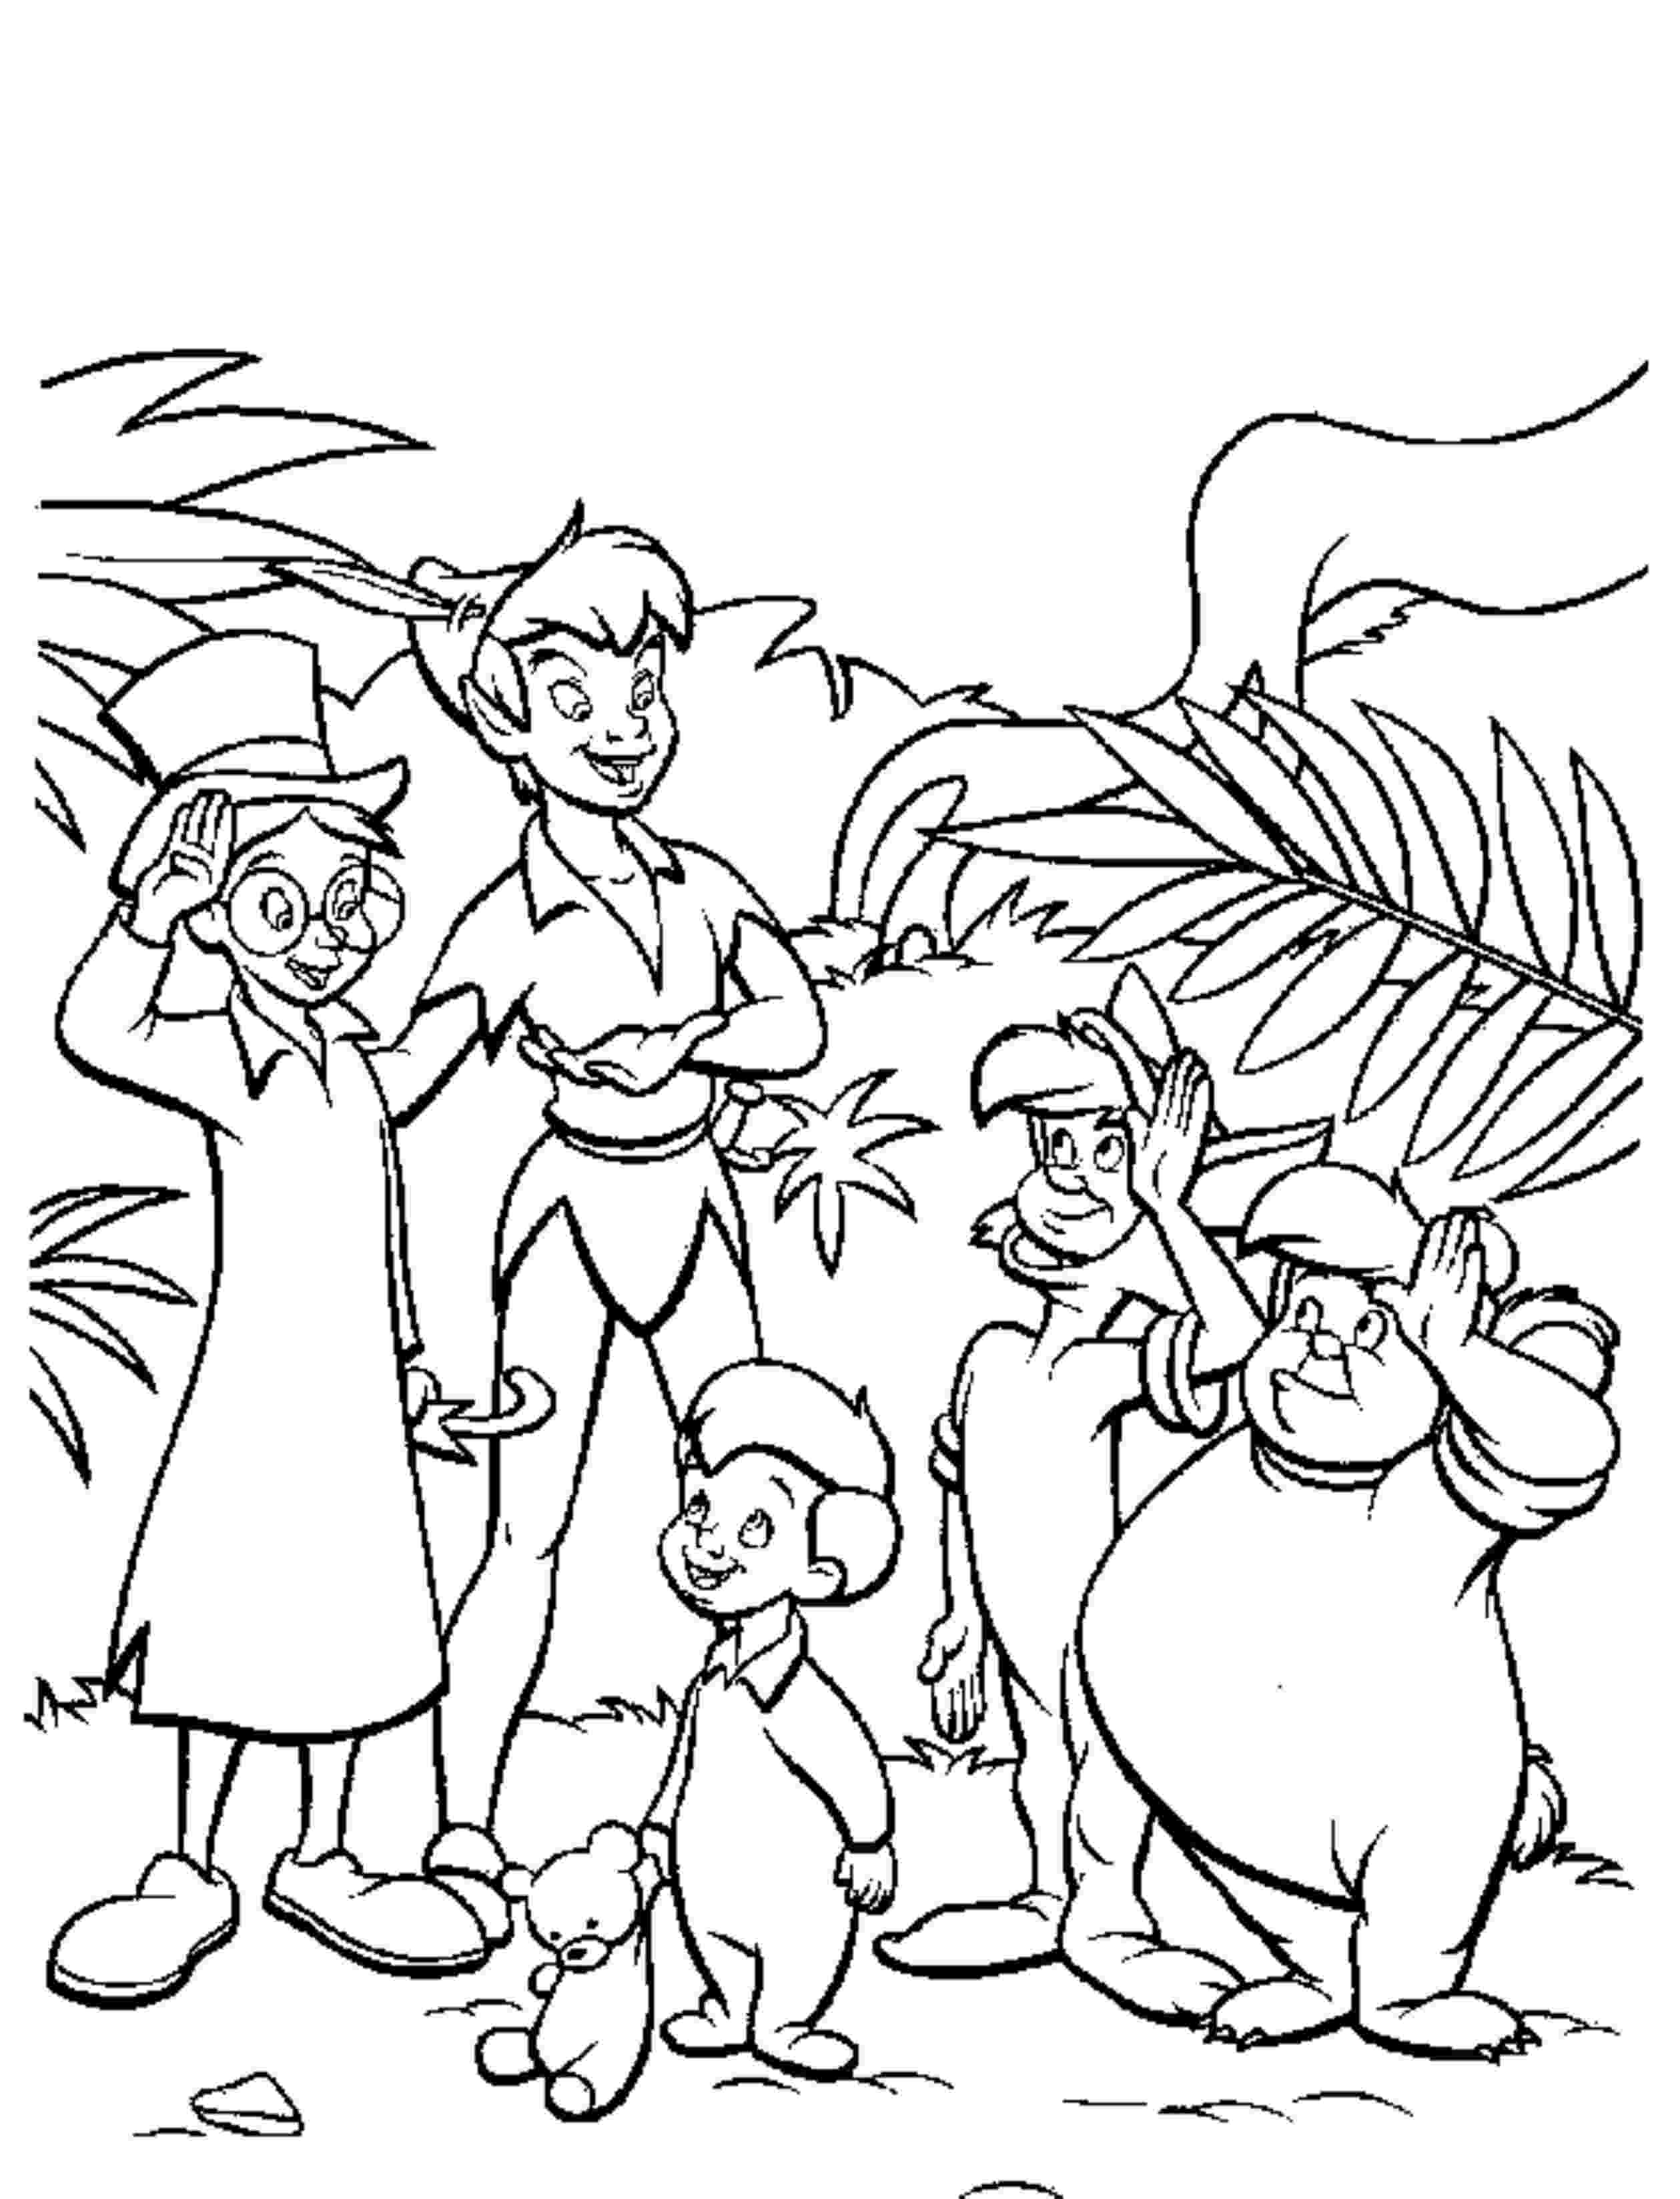 Printable Peter Pan Coloring Pages